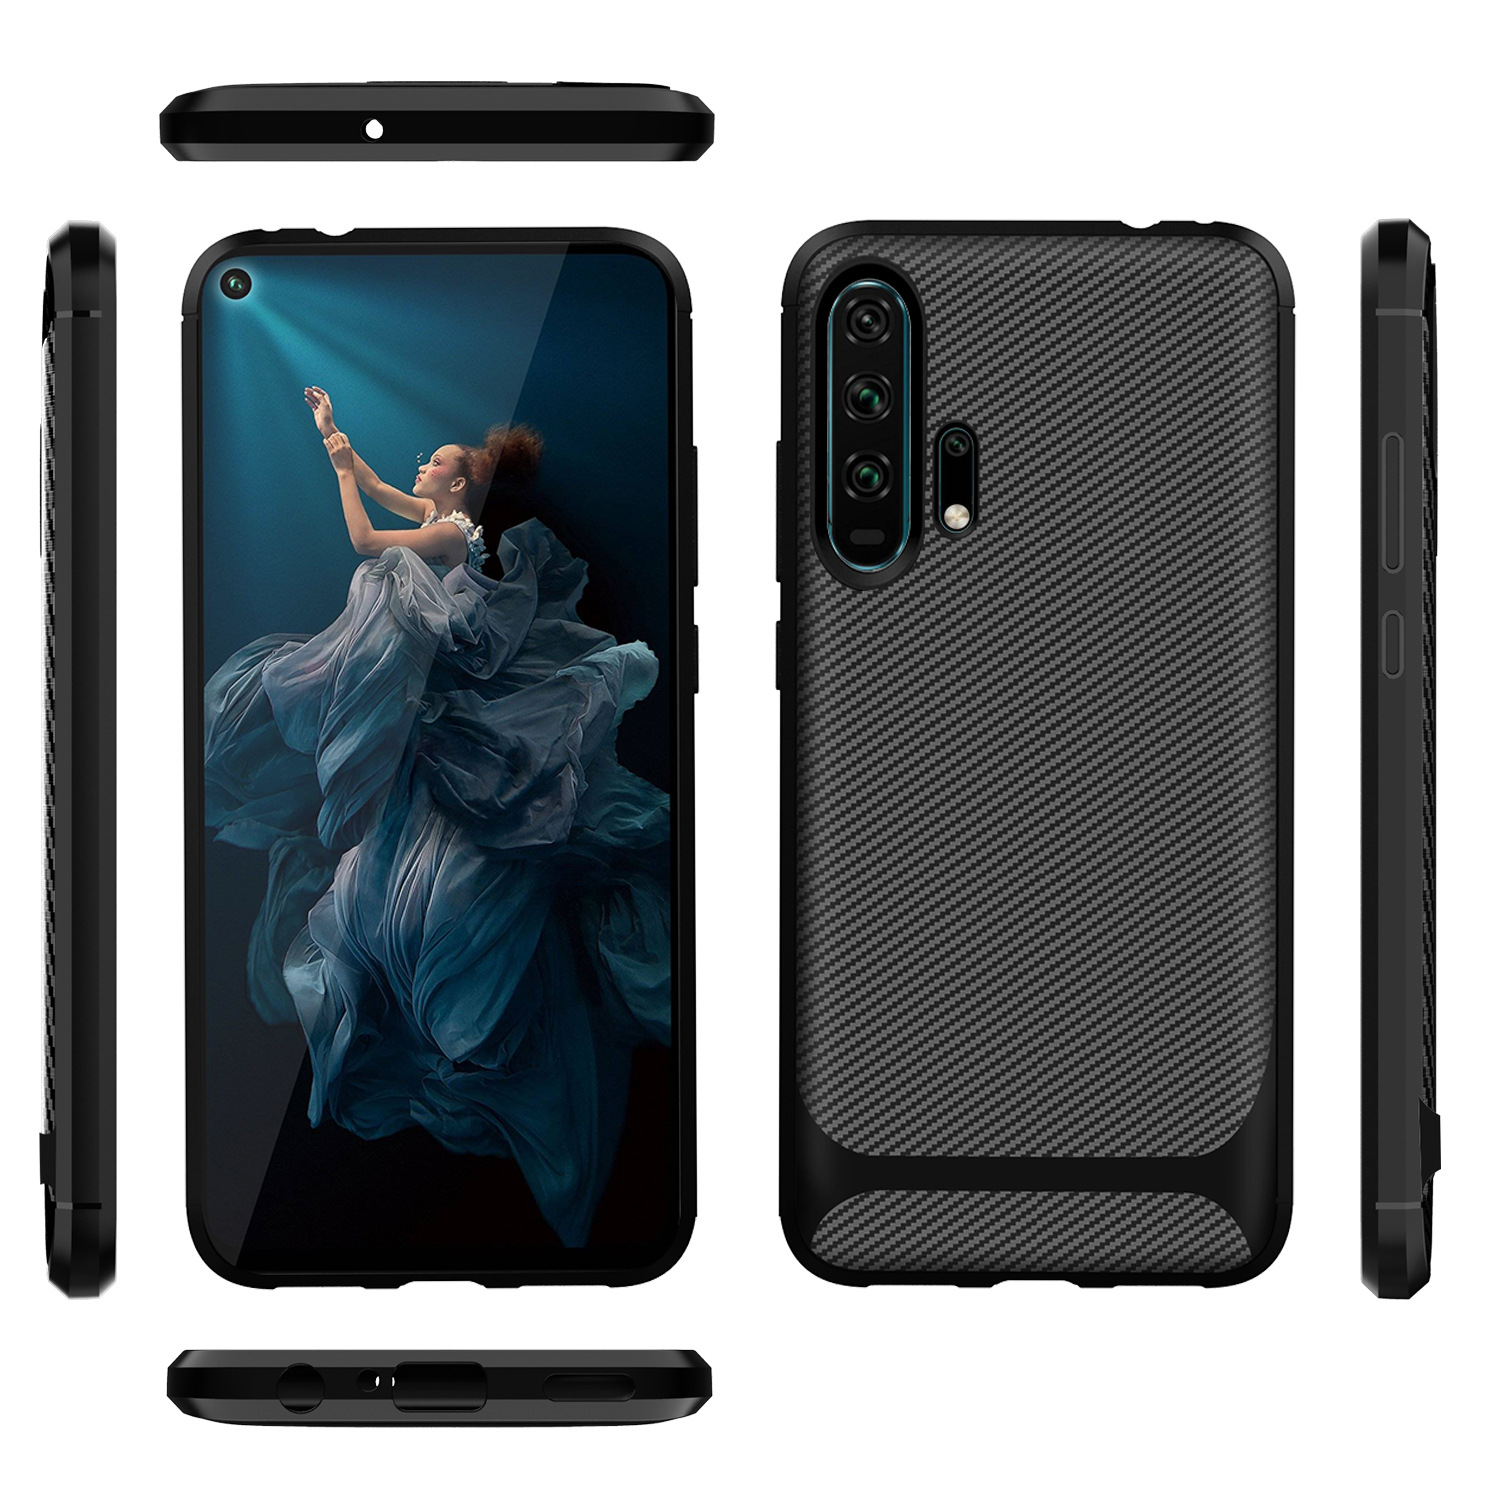 20 For Huawei Honor 20 Case Honor20 Carbon Fiber Textue Silicone TPU Soft Back Cover for Huawei Honor 20 Pro Phone Case Phone Bag (1)